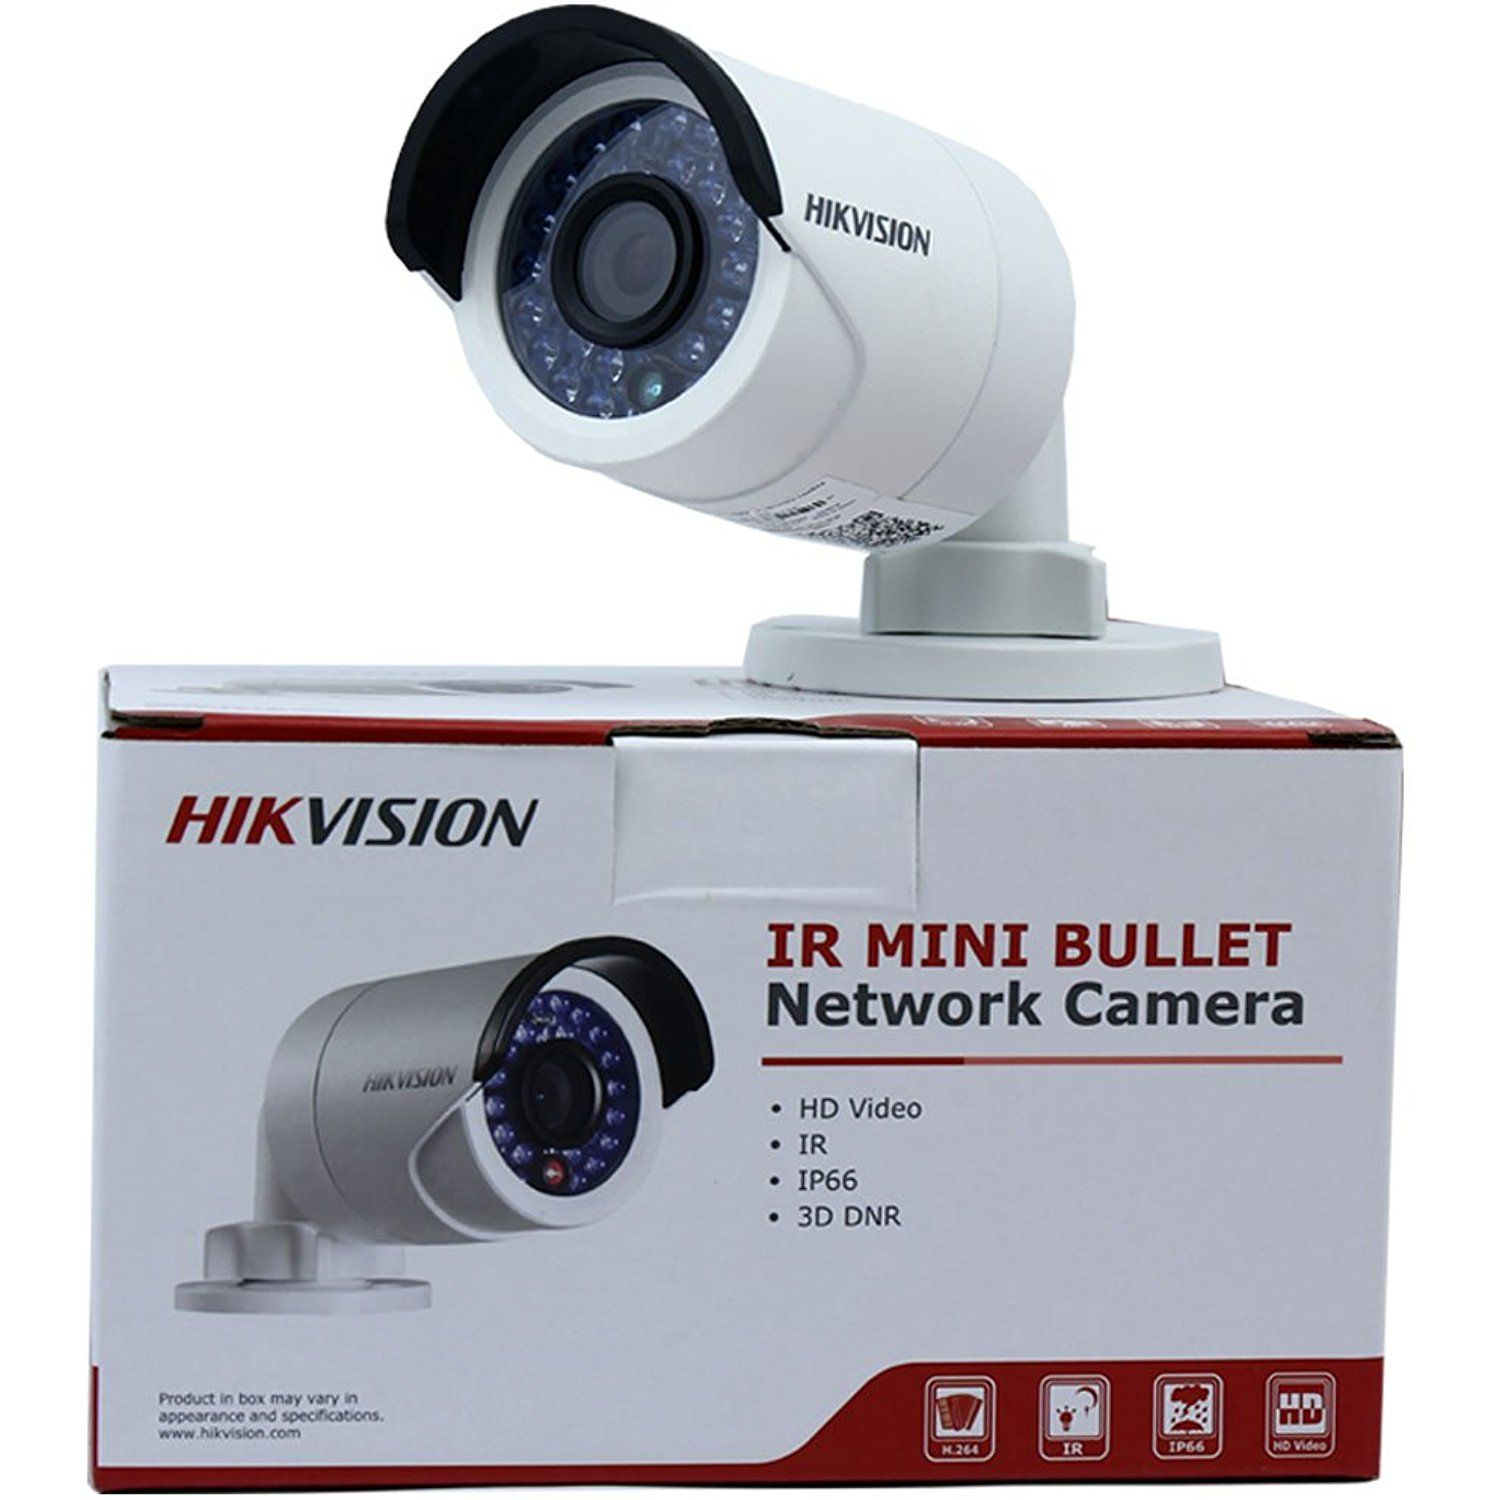 Hikvision Ds 2cd2042wd I 4mp Ir Bullet Network Camera Poe Day Night Vision Ip66 Waterproof Hd Security Camera Installation Home Security Home Security Systems